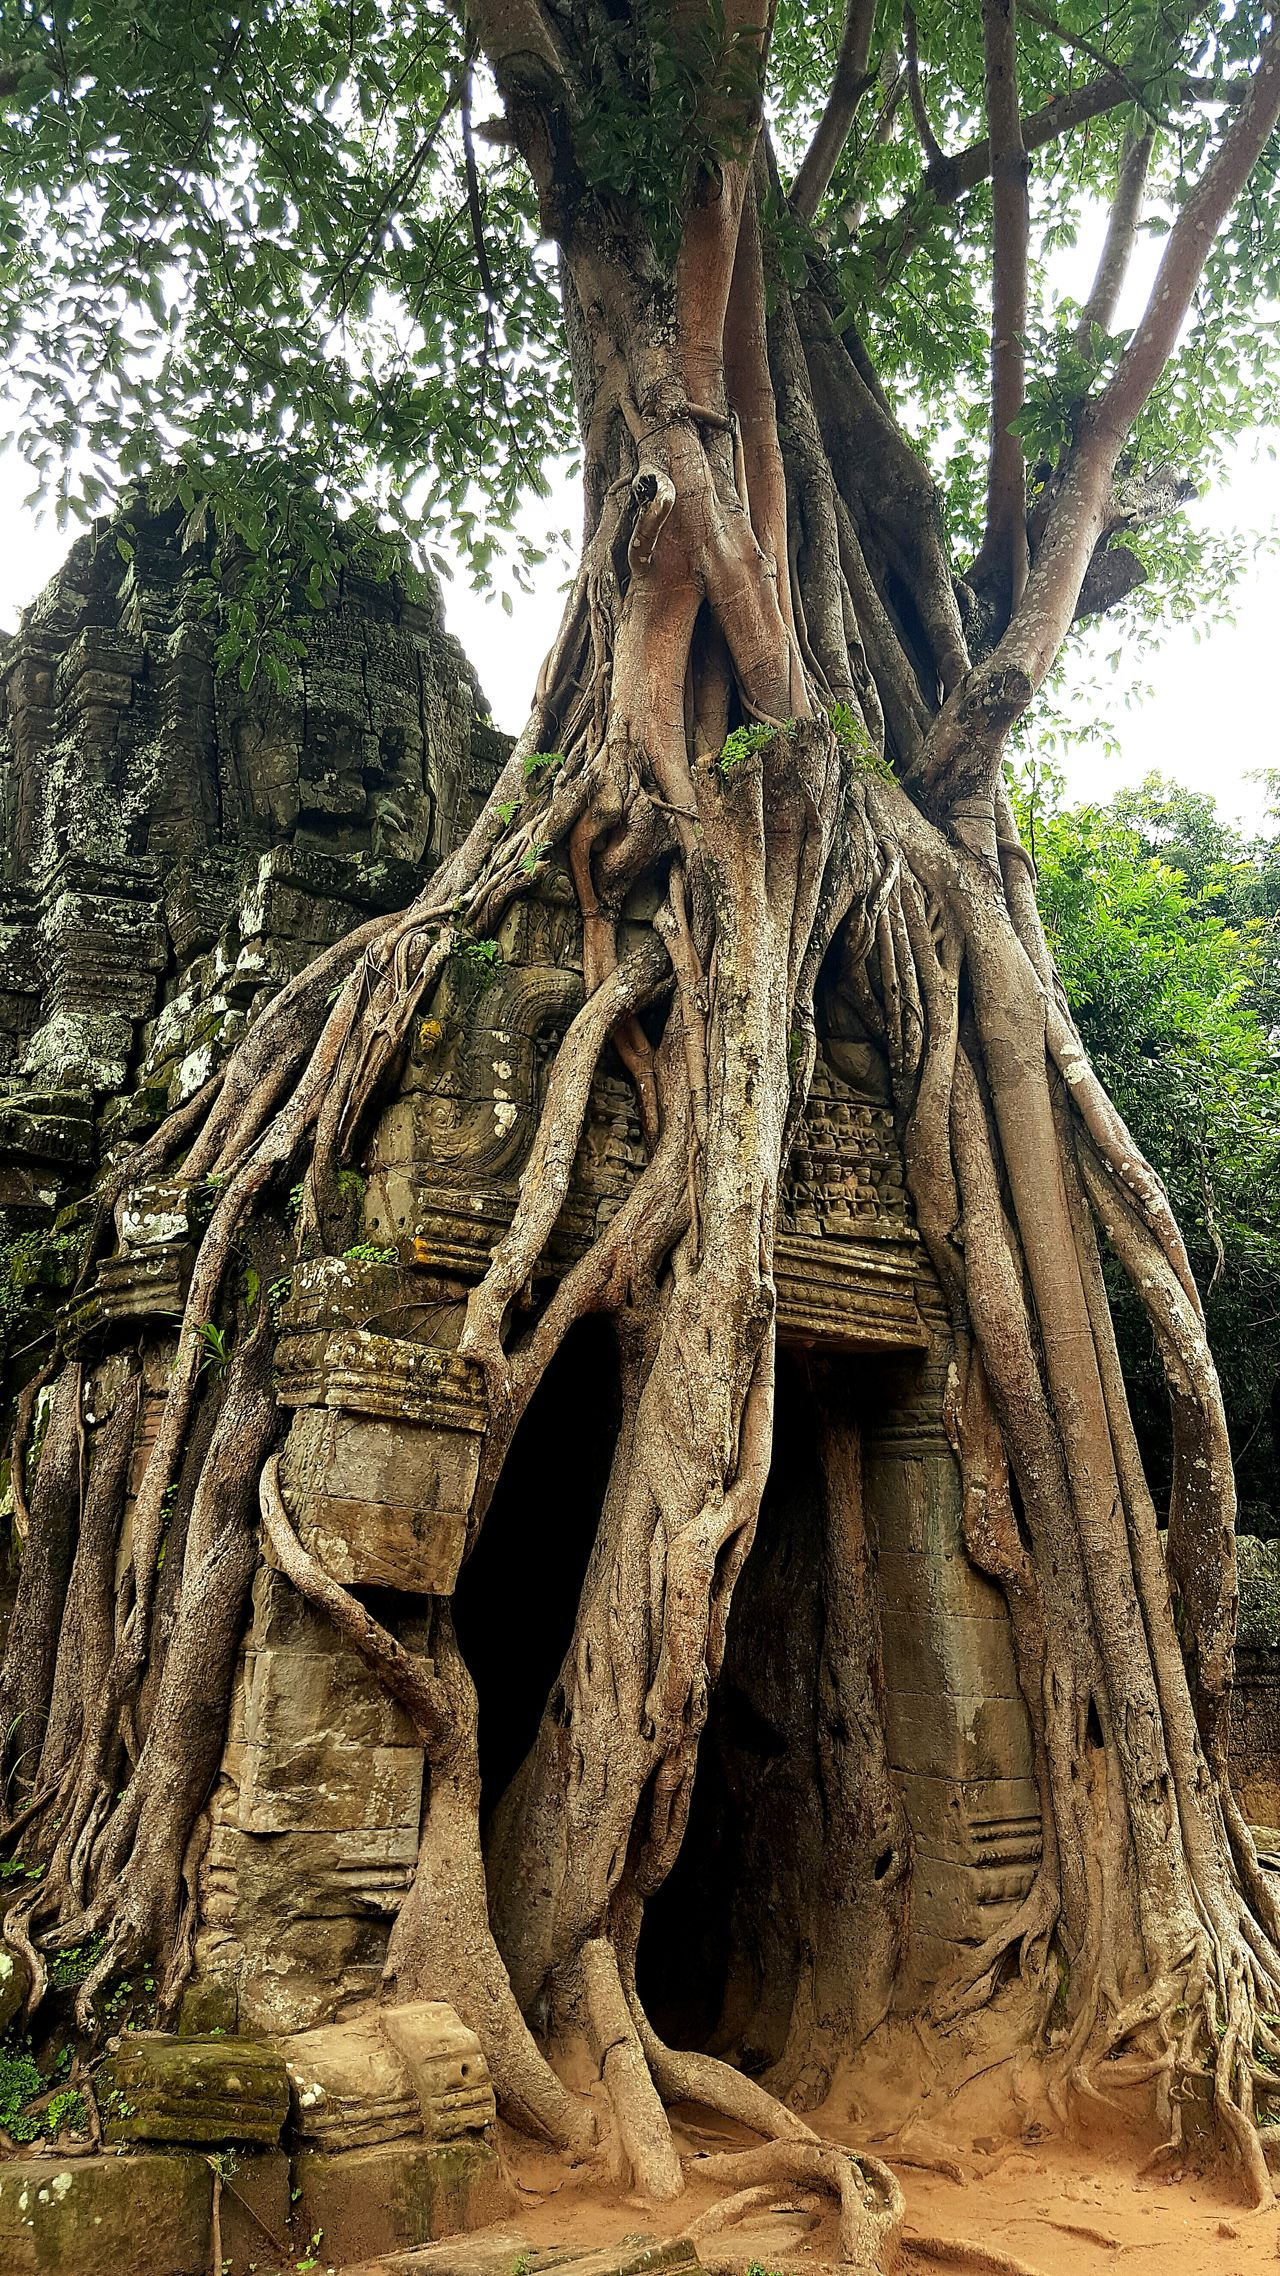 Tree Nature Tree Trunk Outdoors Beauty In Nature Power In Nature Wtf?! Roots Raw Power Growth Travel Destinations Ankor Wat Siem Reap Cambodia